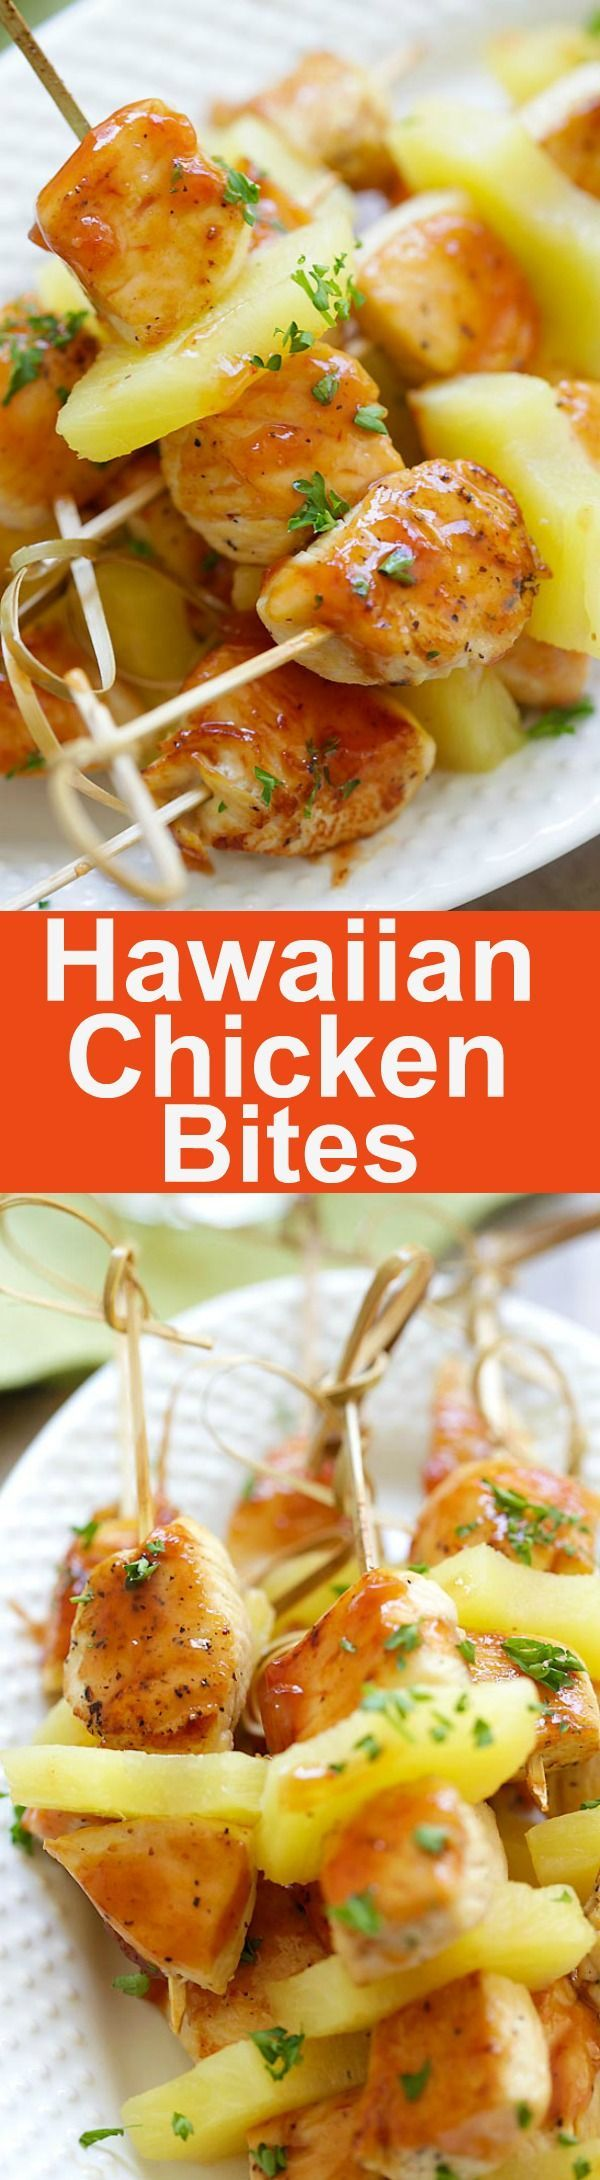 (rasamalaysia.com) Hawaiian Chicken Bites - amazing chicken skewers with pineapple with Hawaiian BBQ sauce. This recipe is so easy and a crowd pleaser.